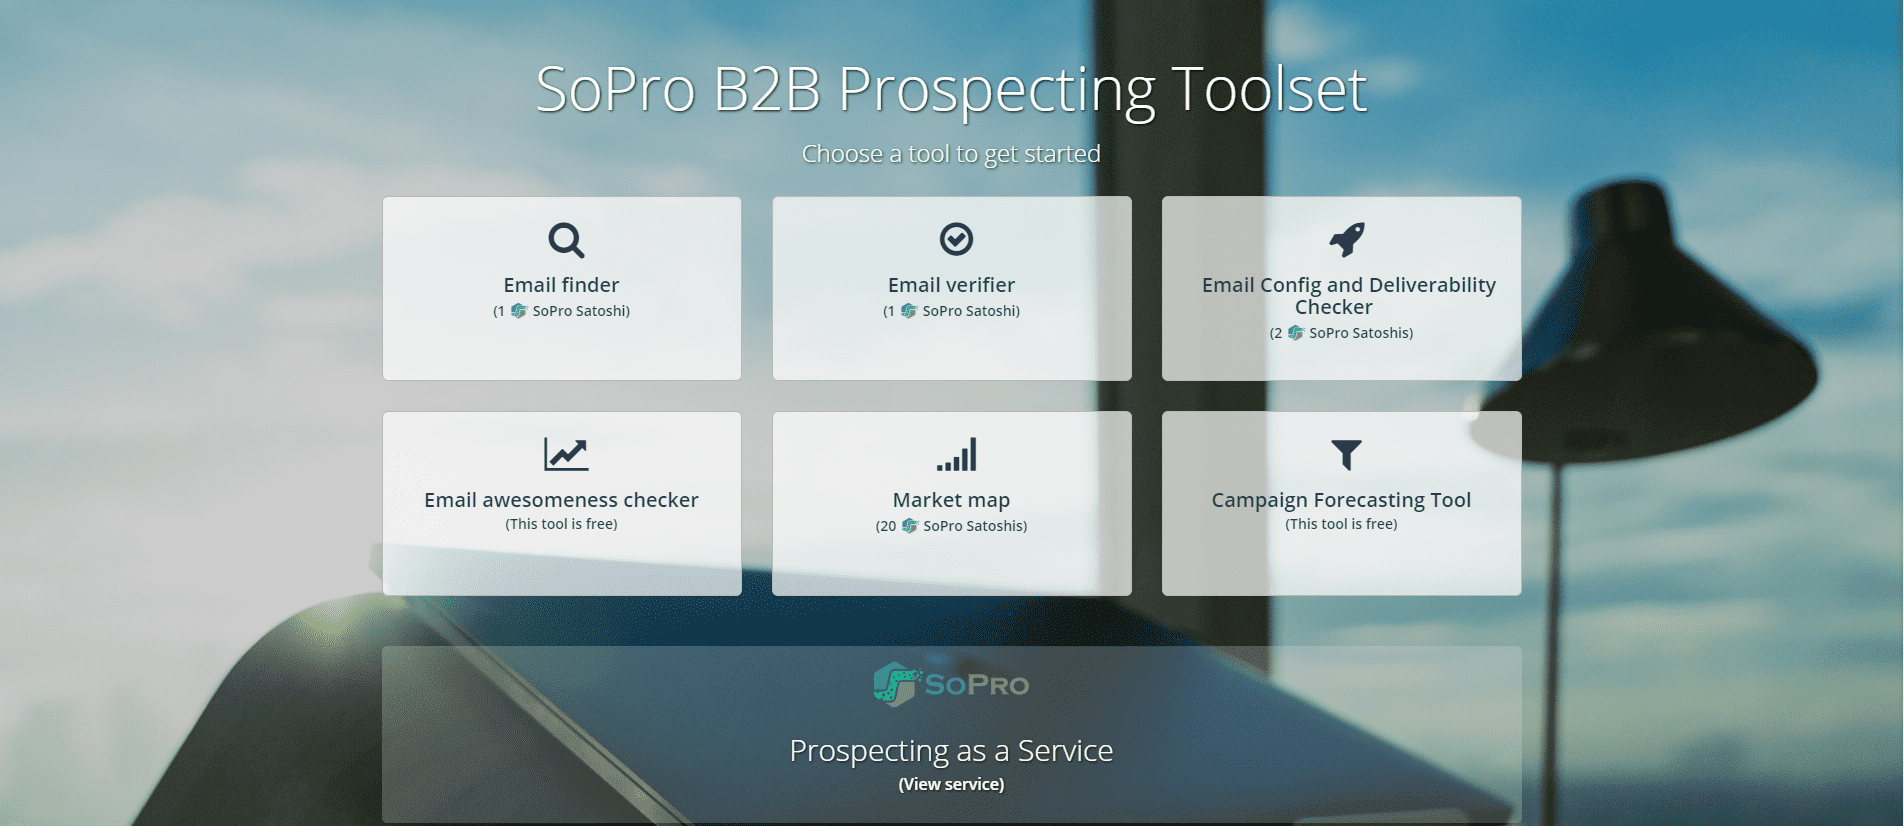 SoPro just launched the B2B Prospecting Power Toolset – and